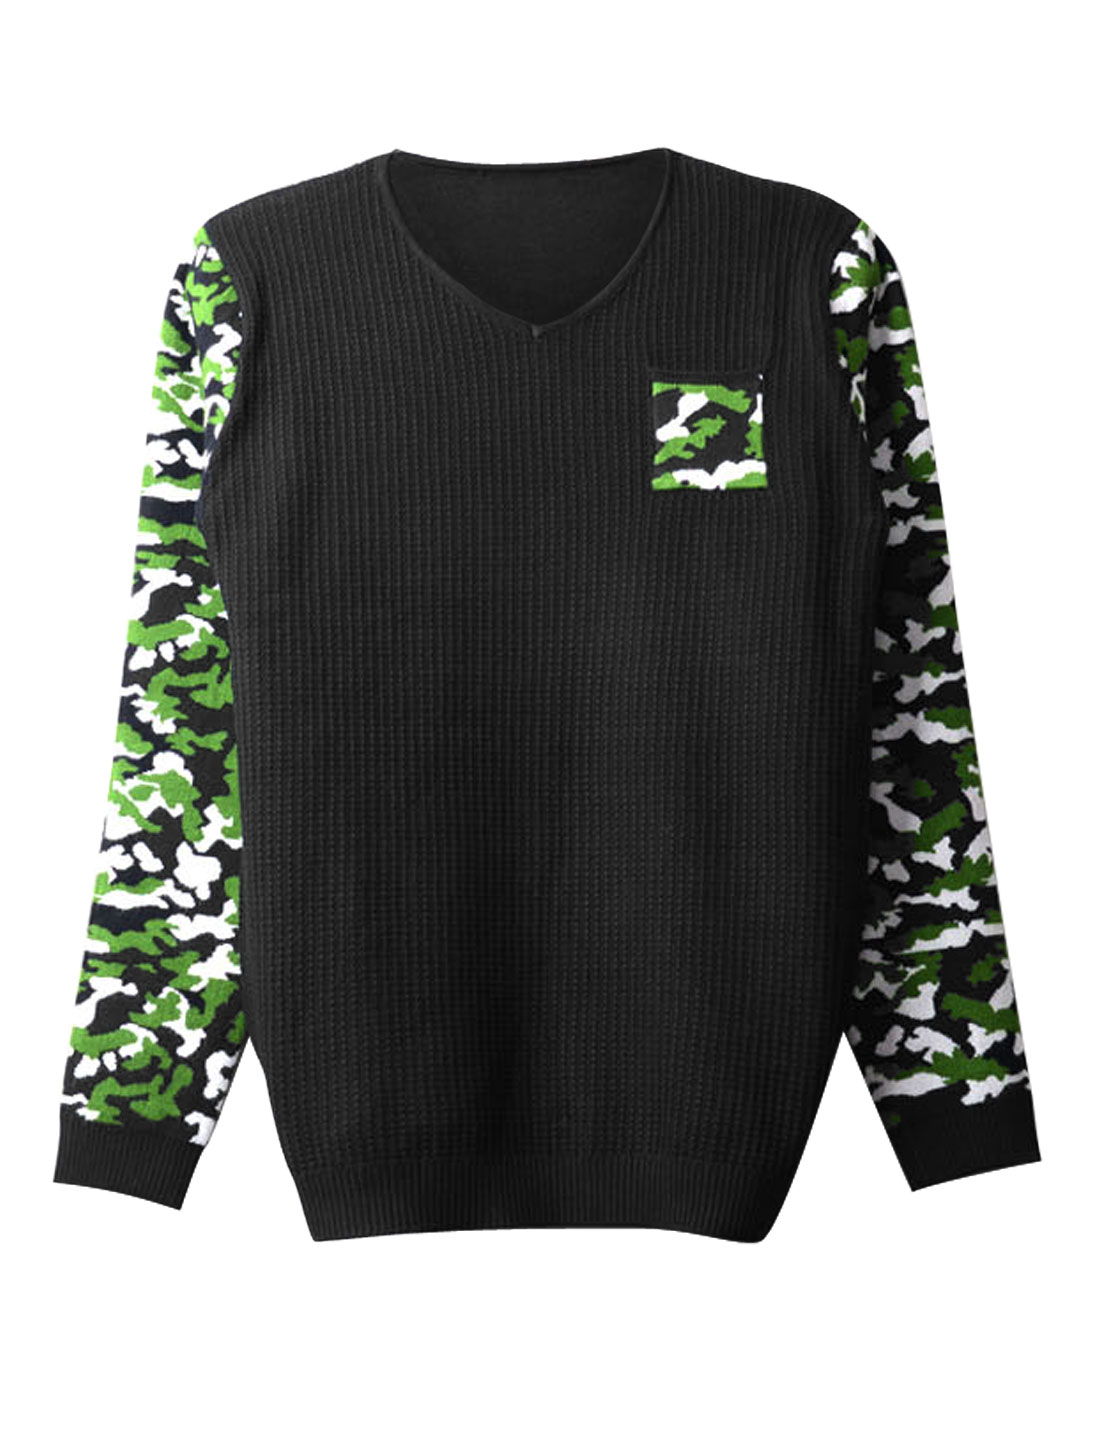 Men Contrast Long Sleeves Chest Pocket Camo Print Fashion Sweater Green Black S